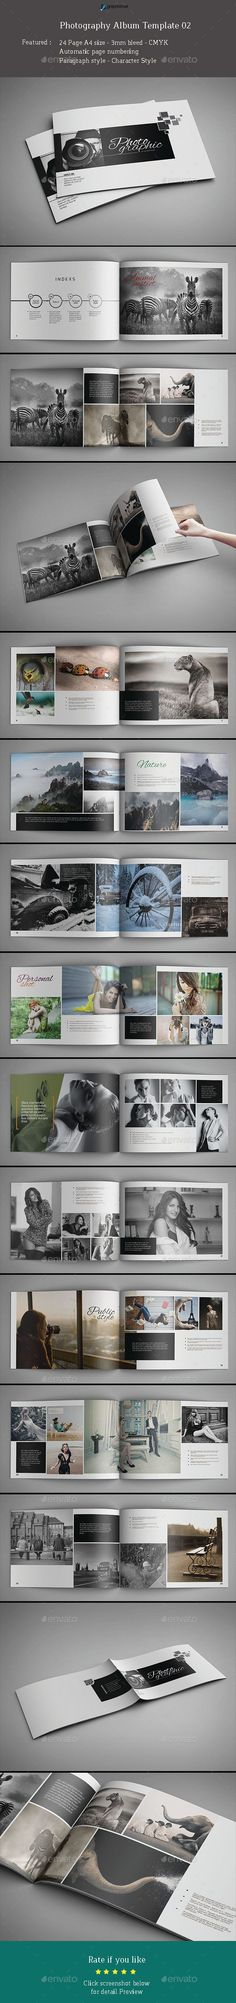 Photography Album Template #design #print Download: http://graphicriver.net/item/photography-album-template-02/11675839?ref=ksioks #PhotoAlbum